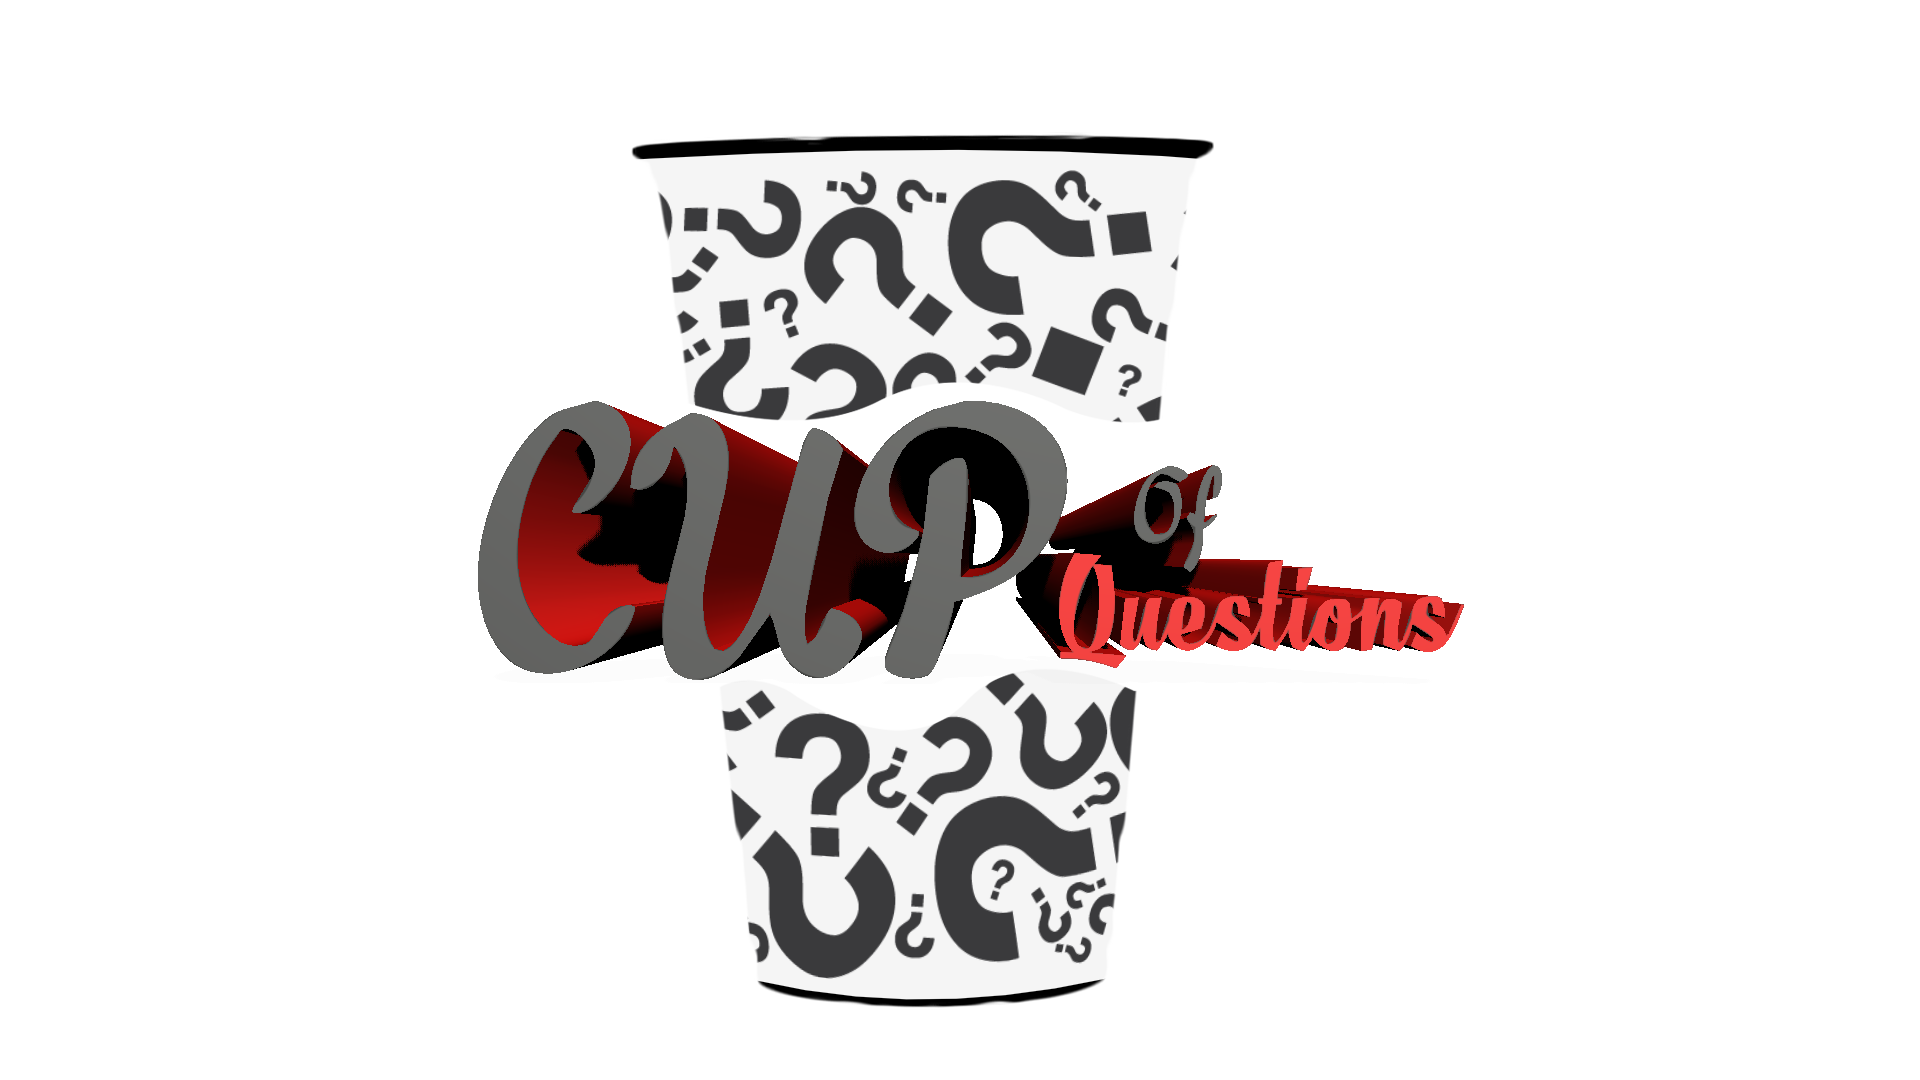 Cup of questions